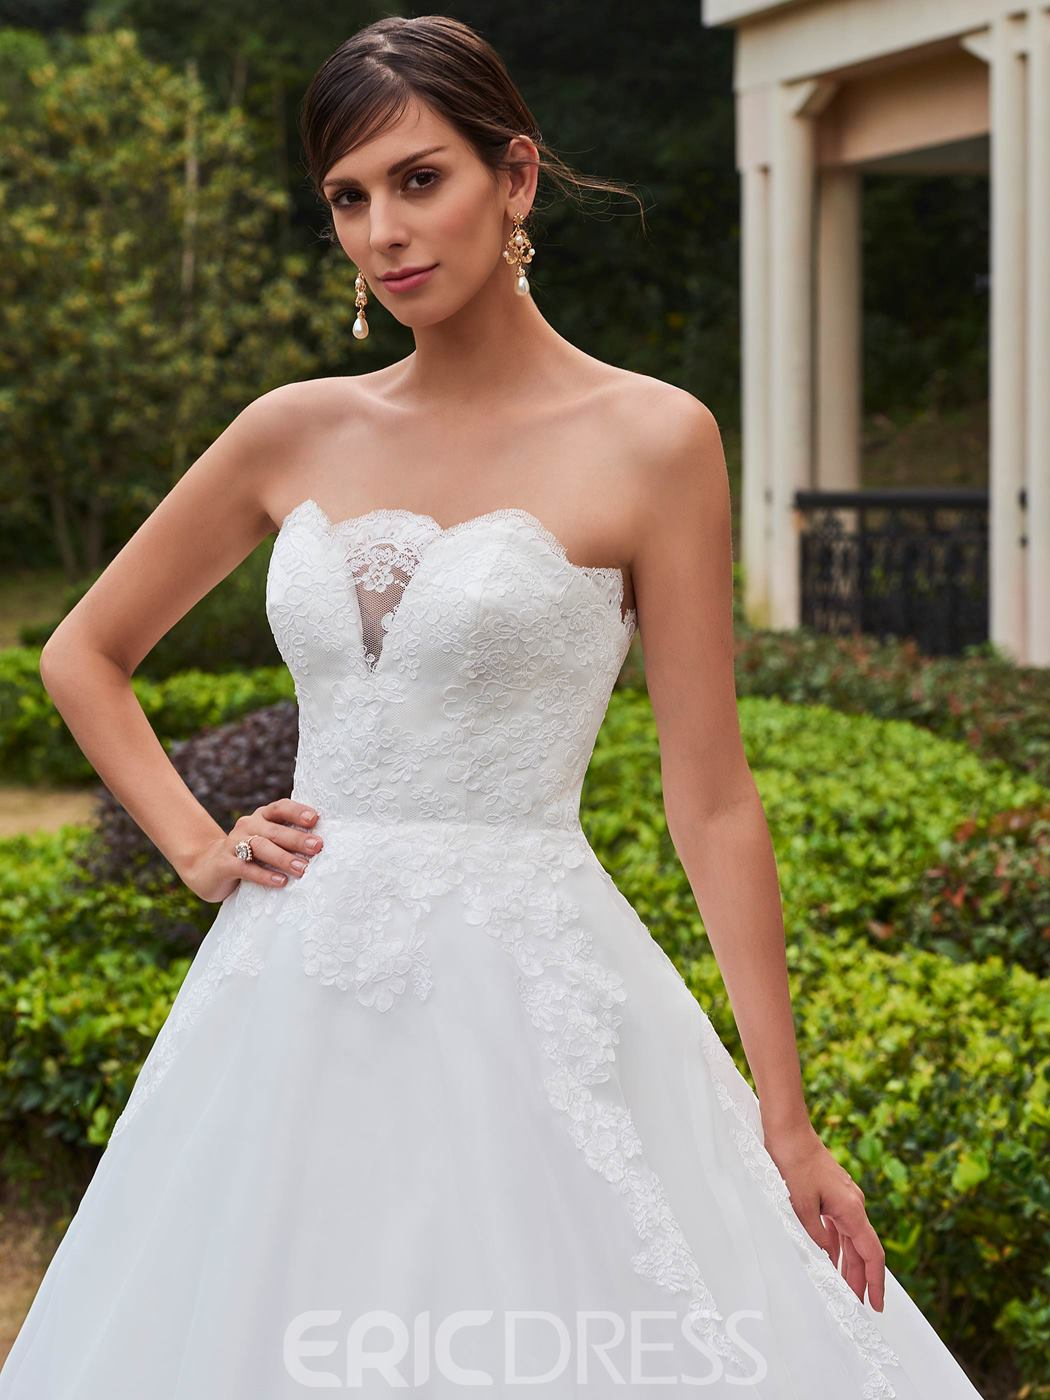 Ericdress Charming Appliques Strapless Ball Gown Wedding Dress